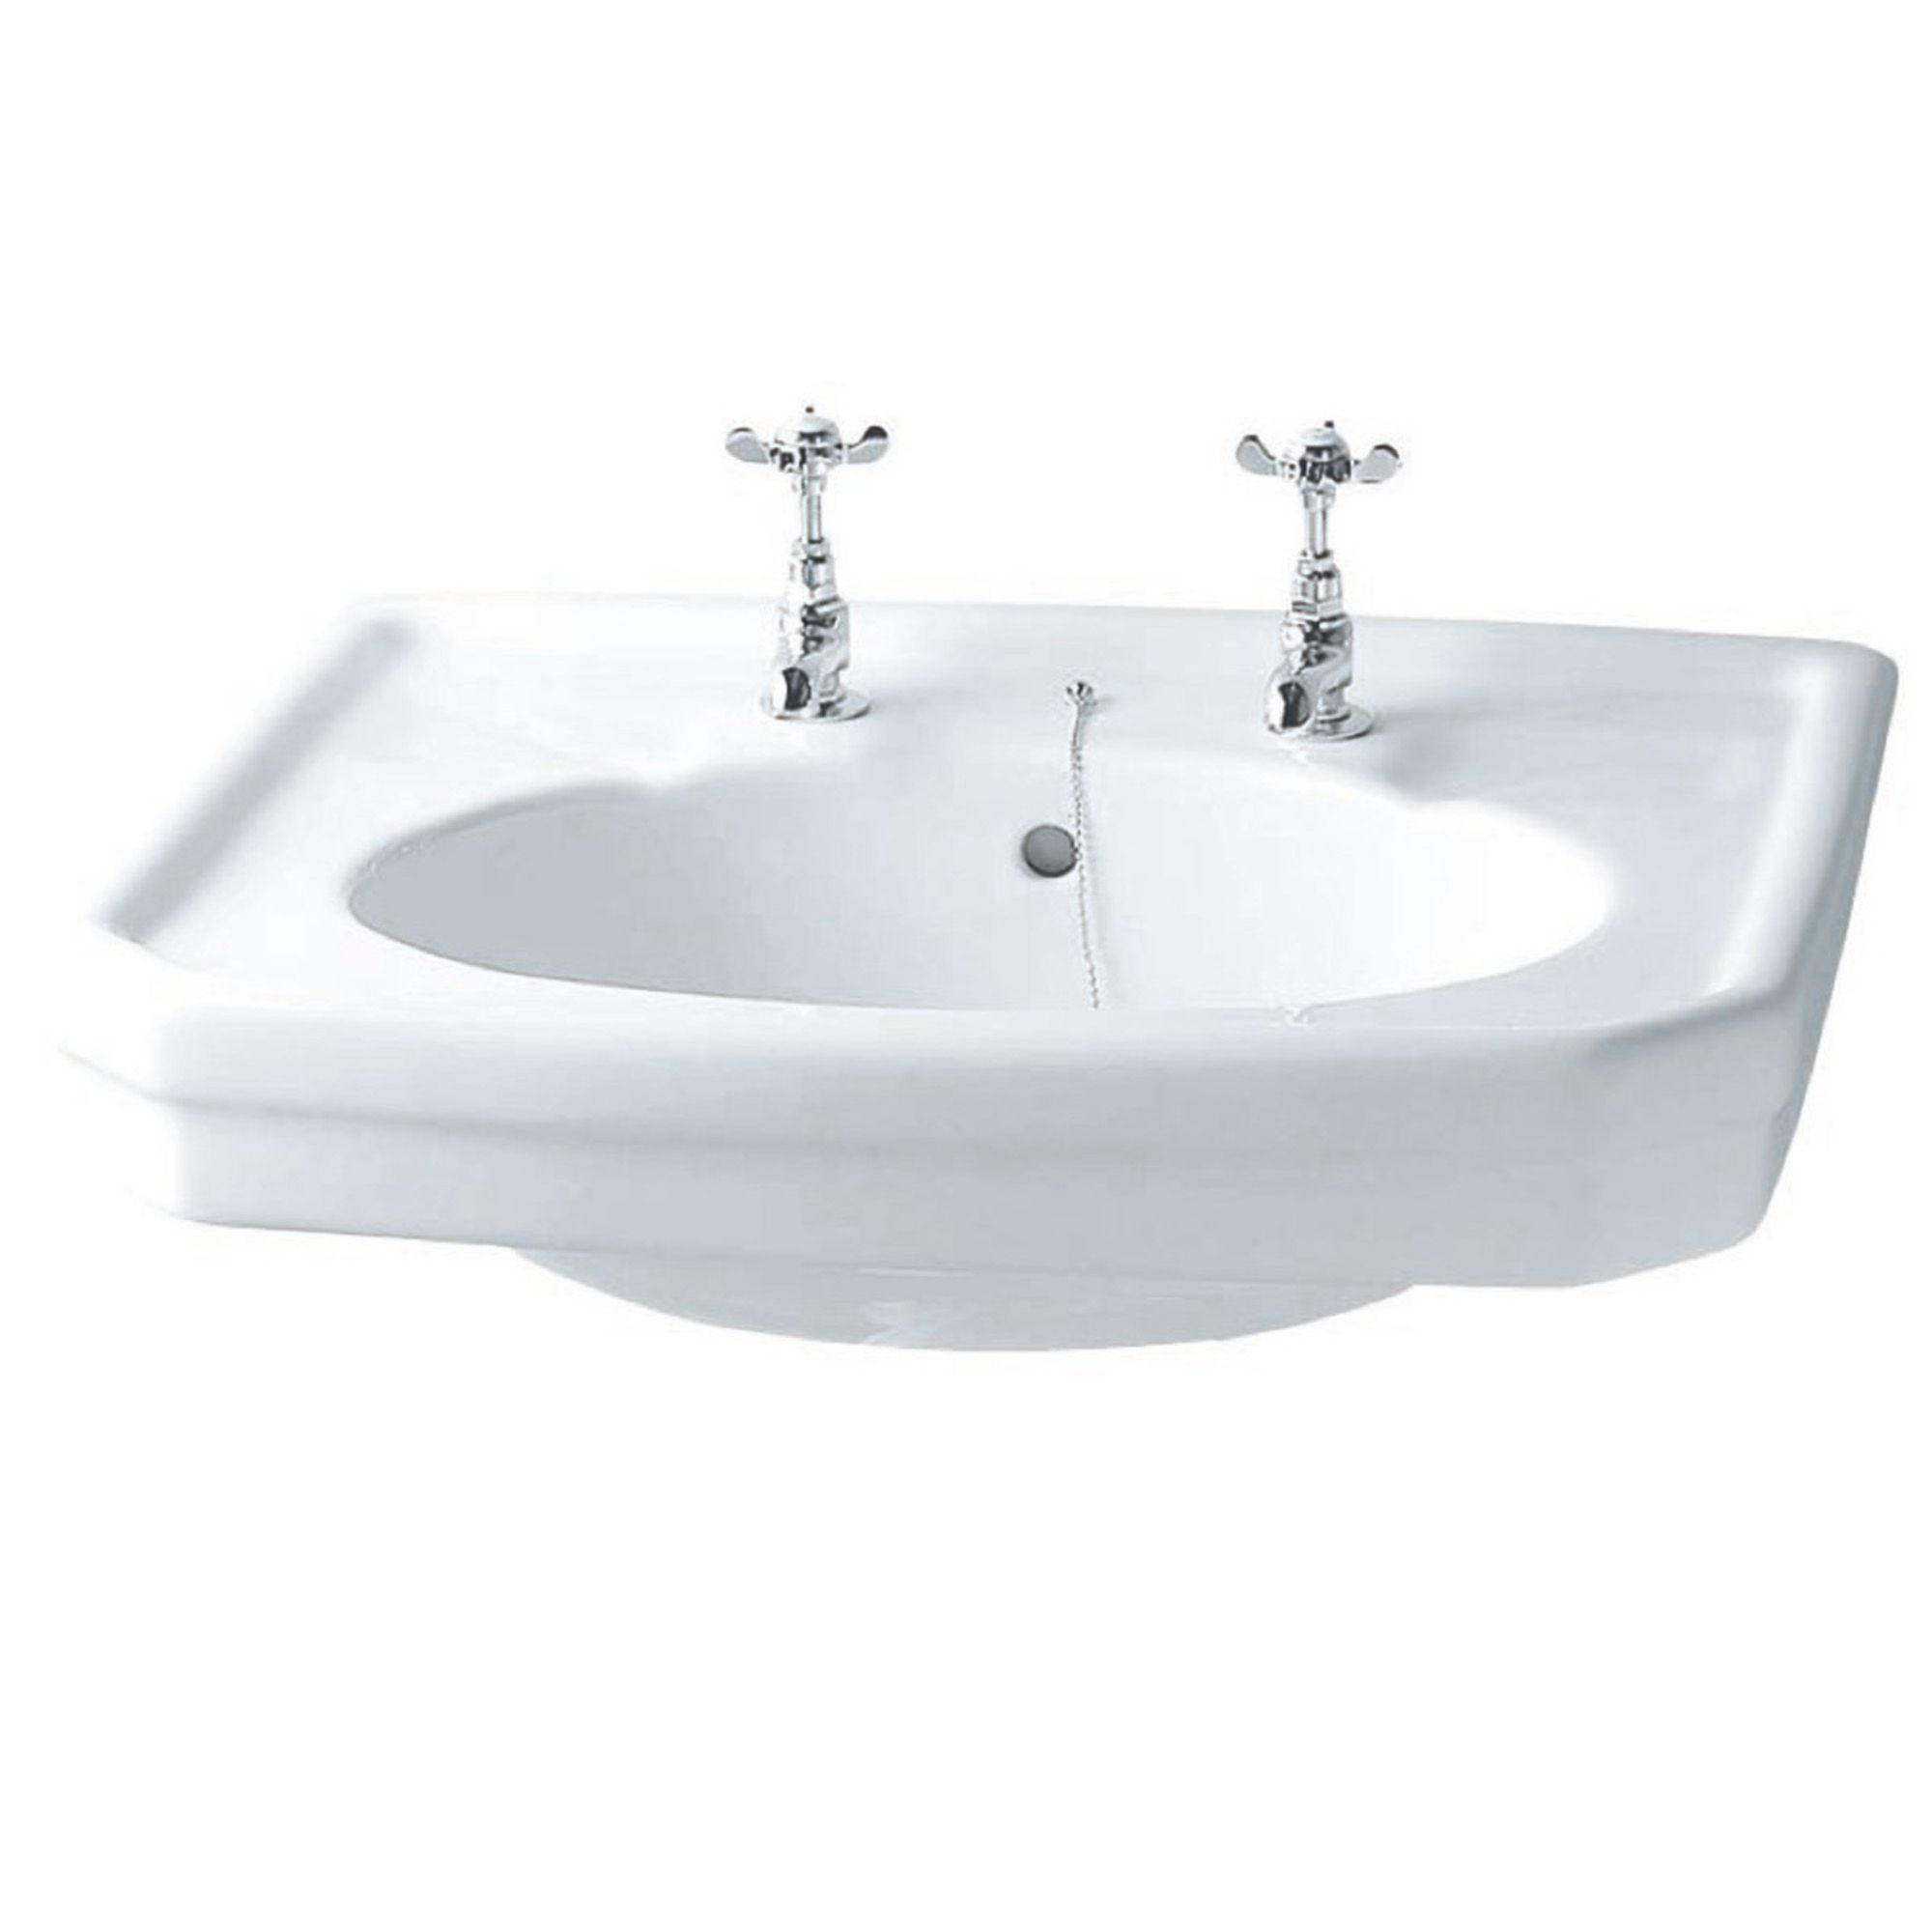 Bathroom Sink 500 X 400 iflo herita basin 500 x 400 mm 2 tap hole | city plumbing supplies